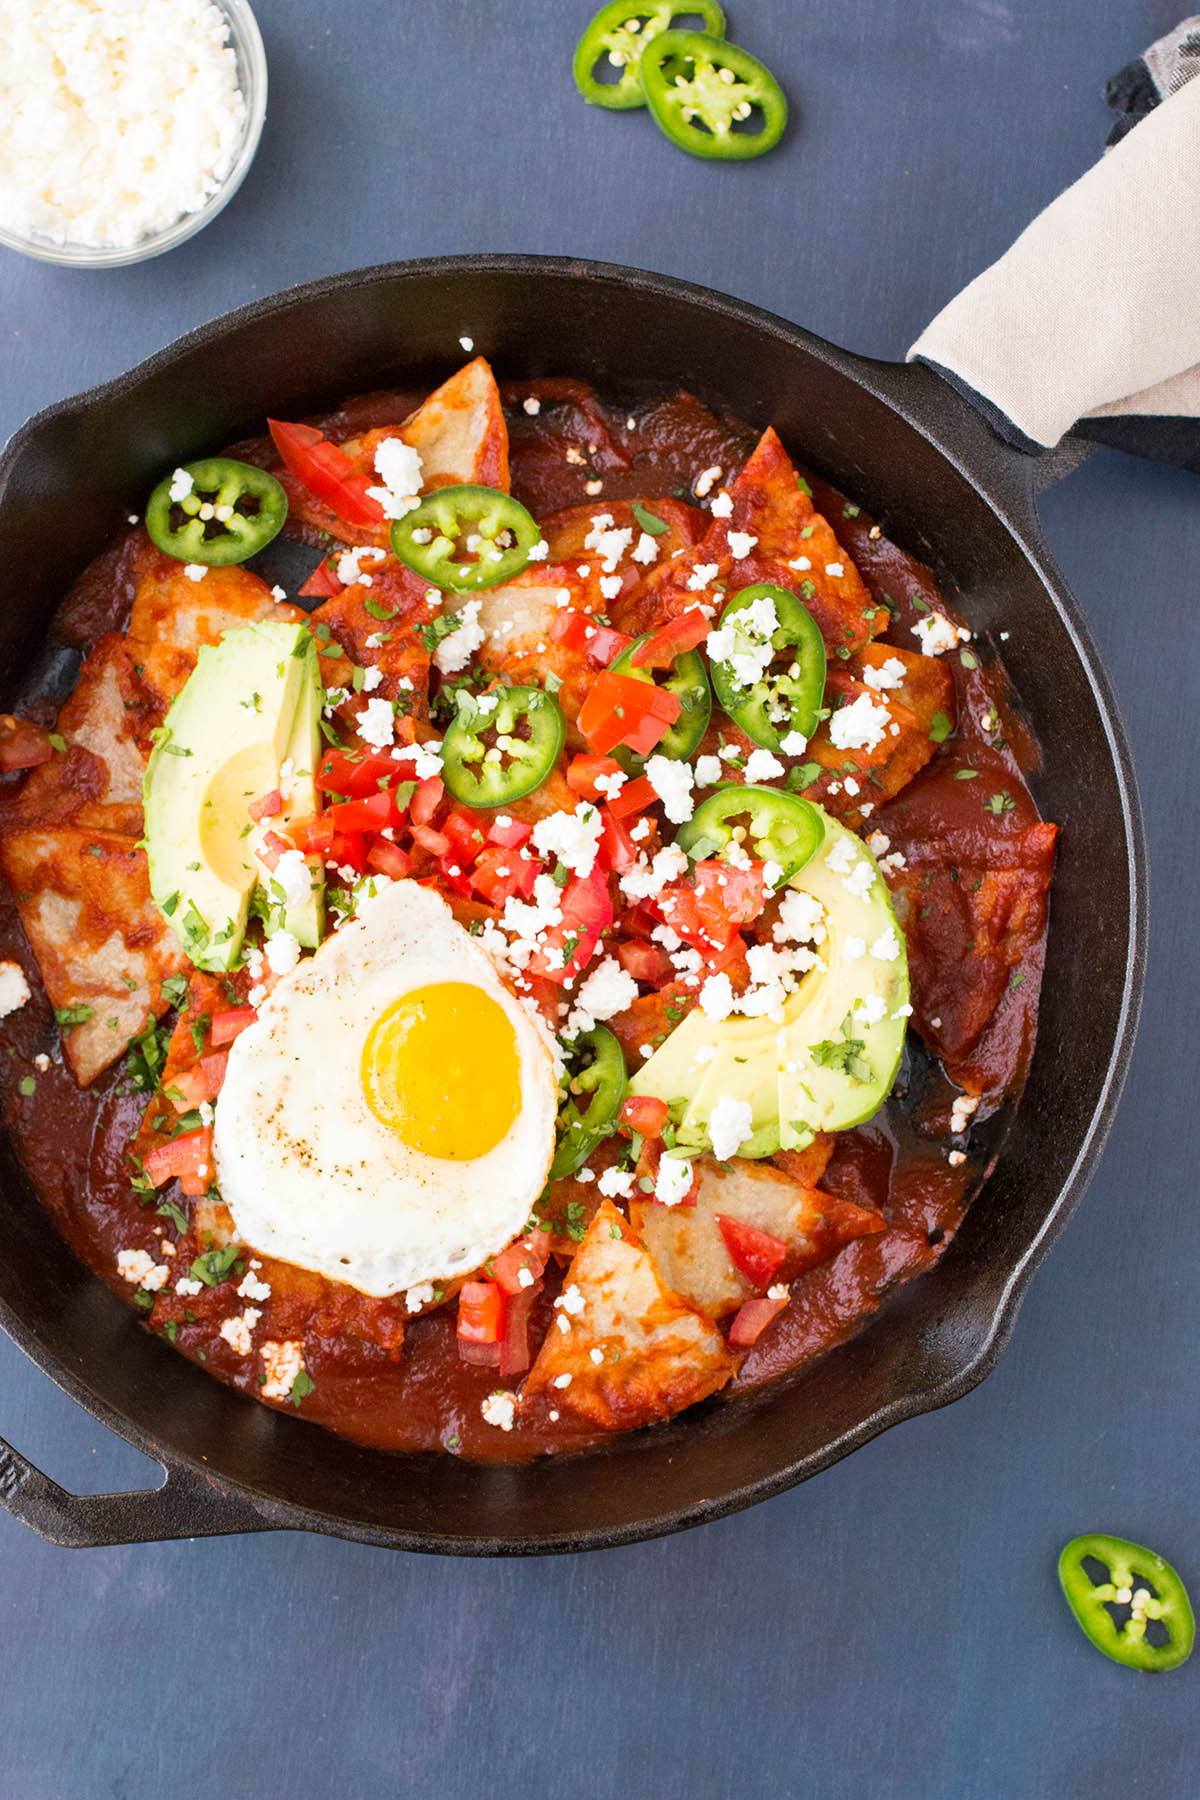 Chilaquiles Rojos with Ancho Chili Sauce